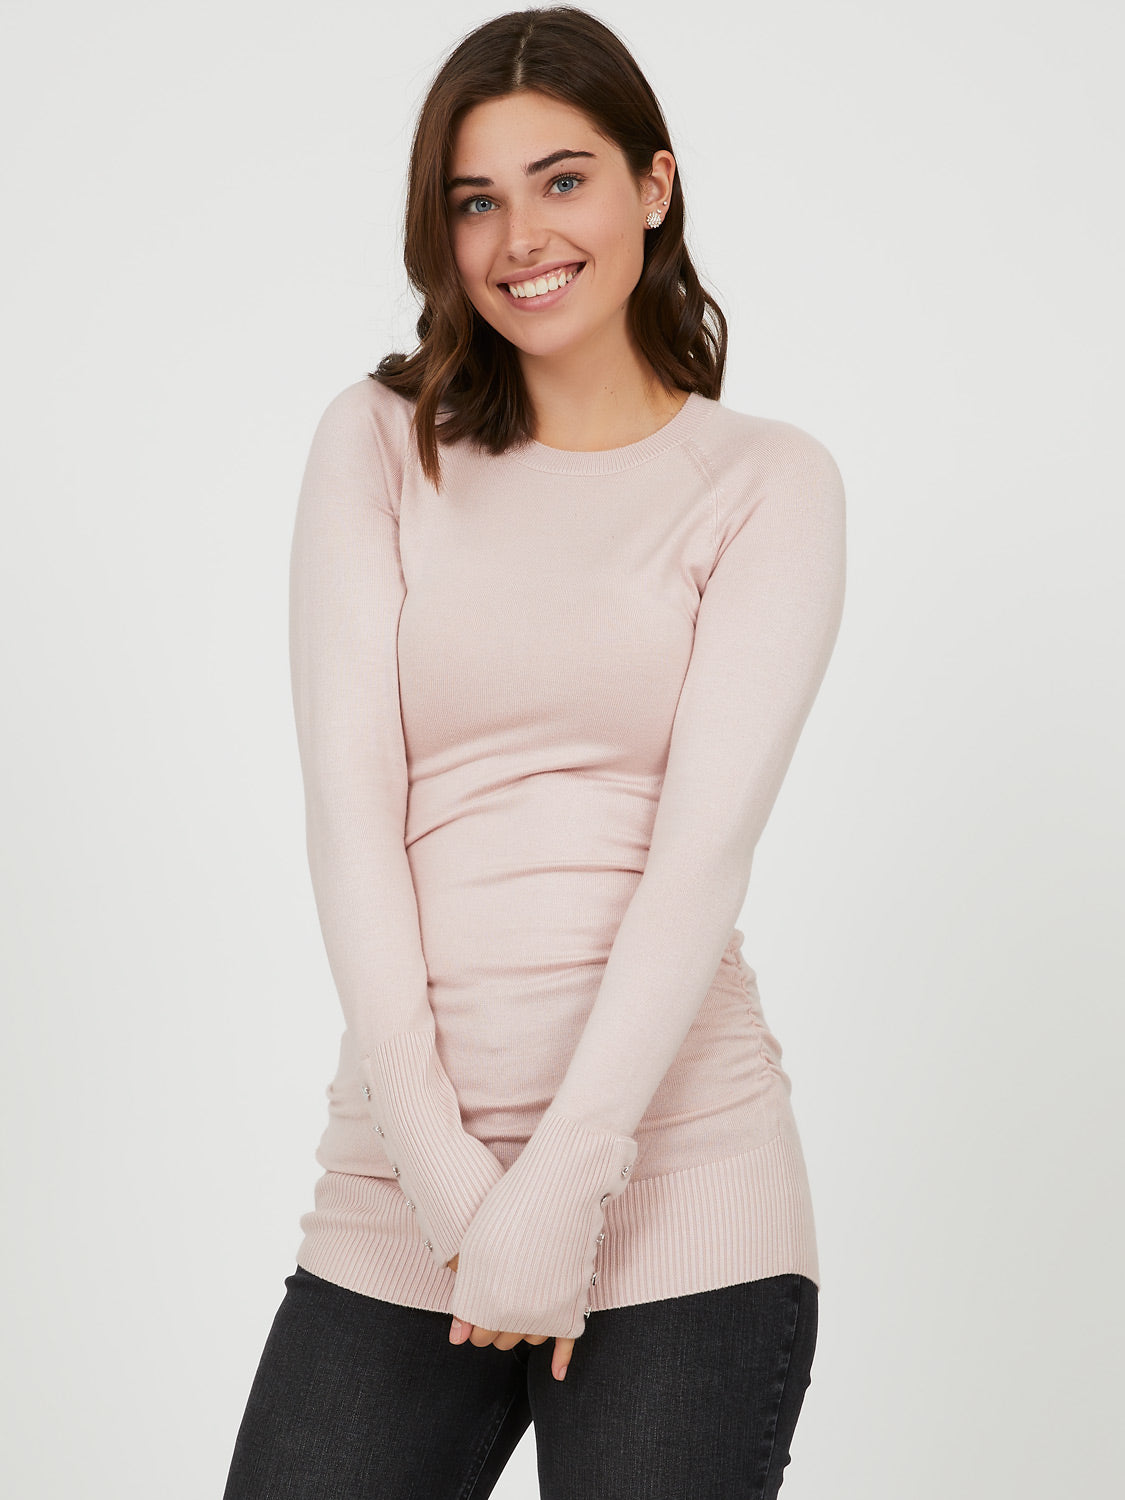 Ruched Sides Crew Neck Sweater